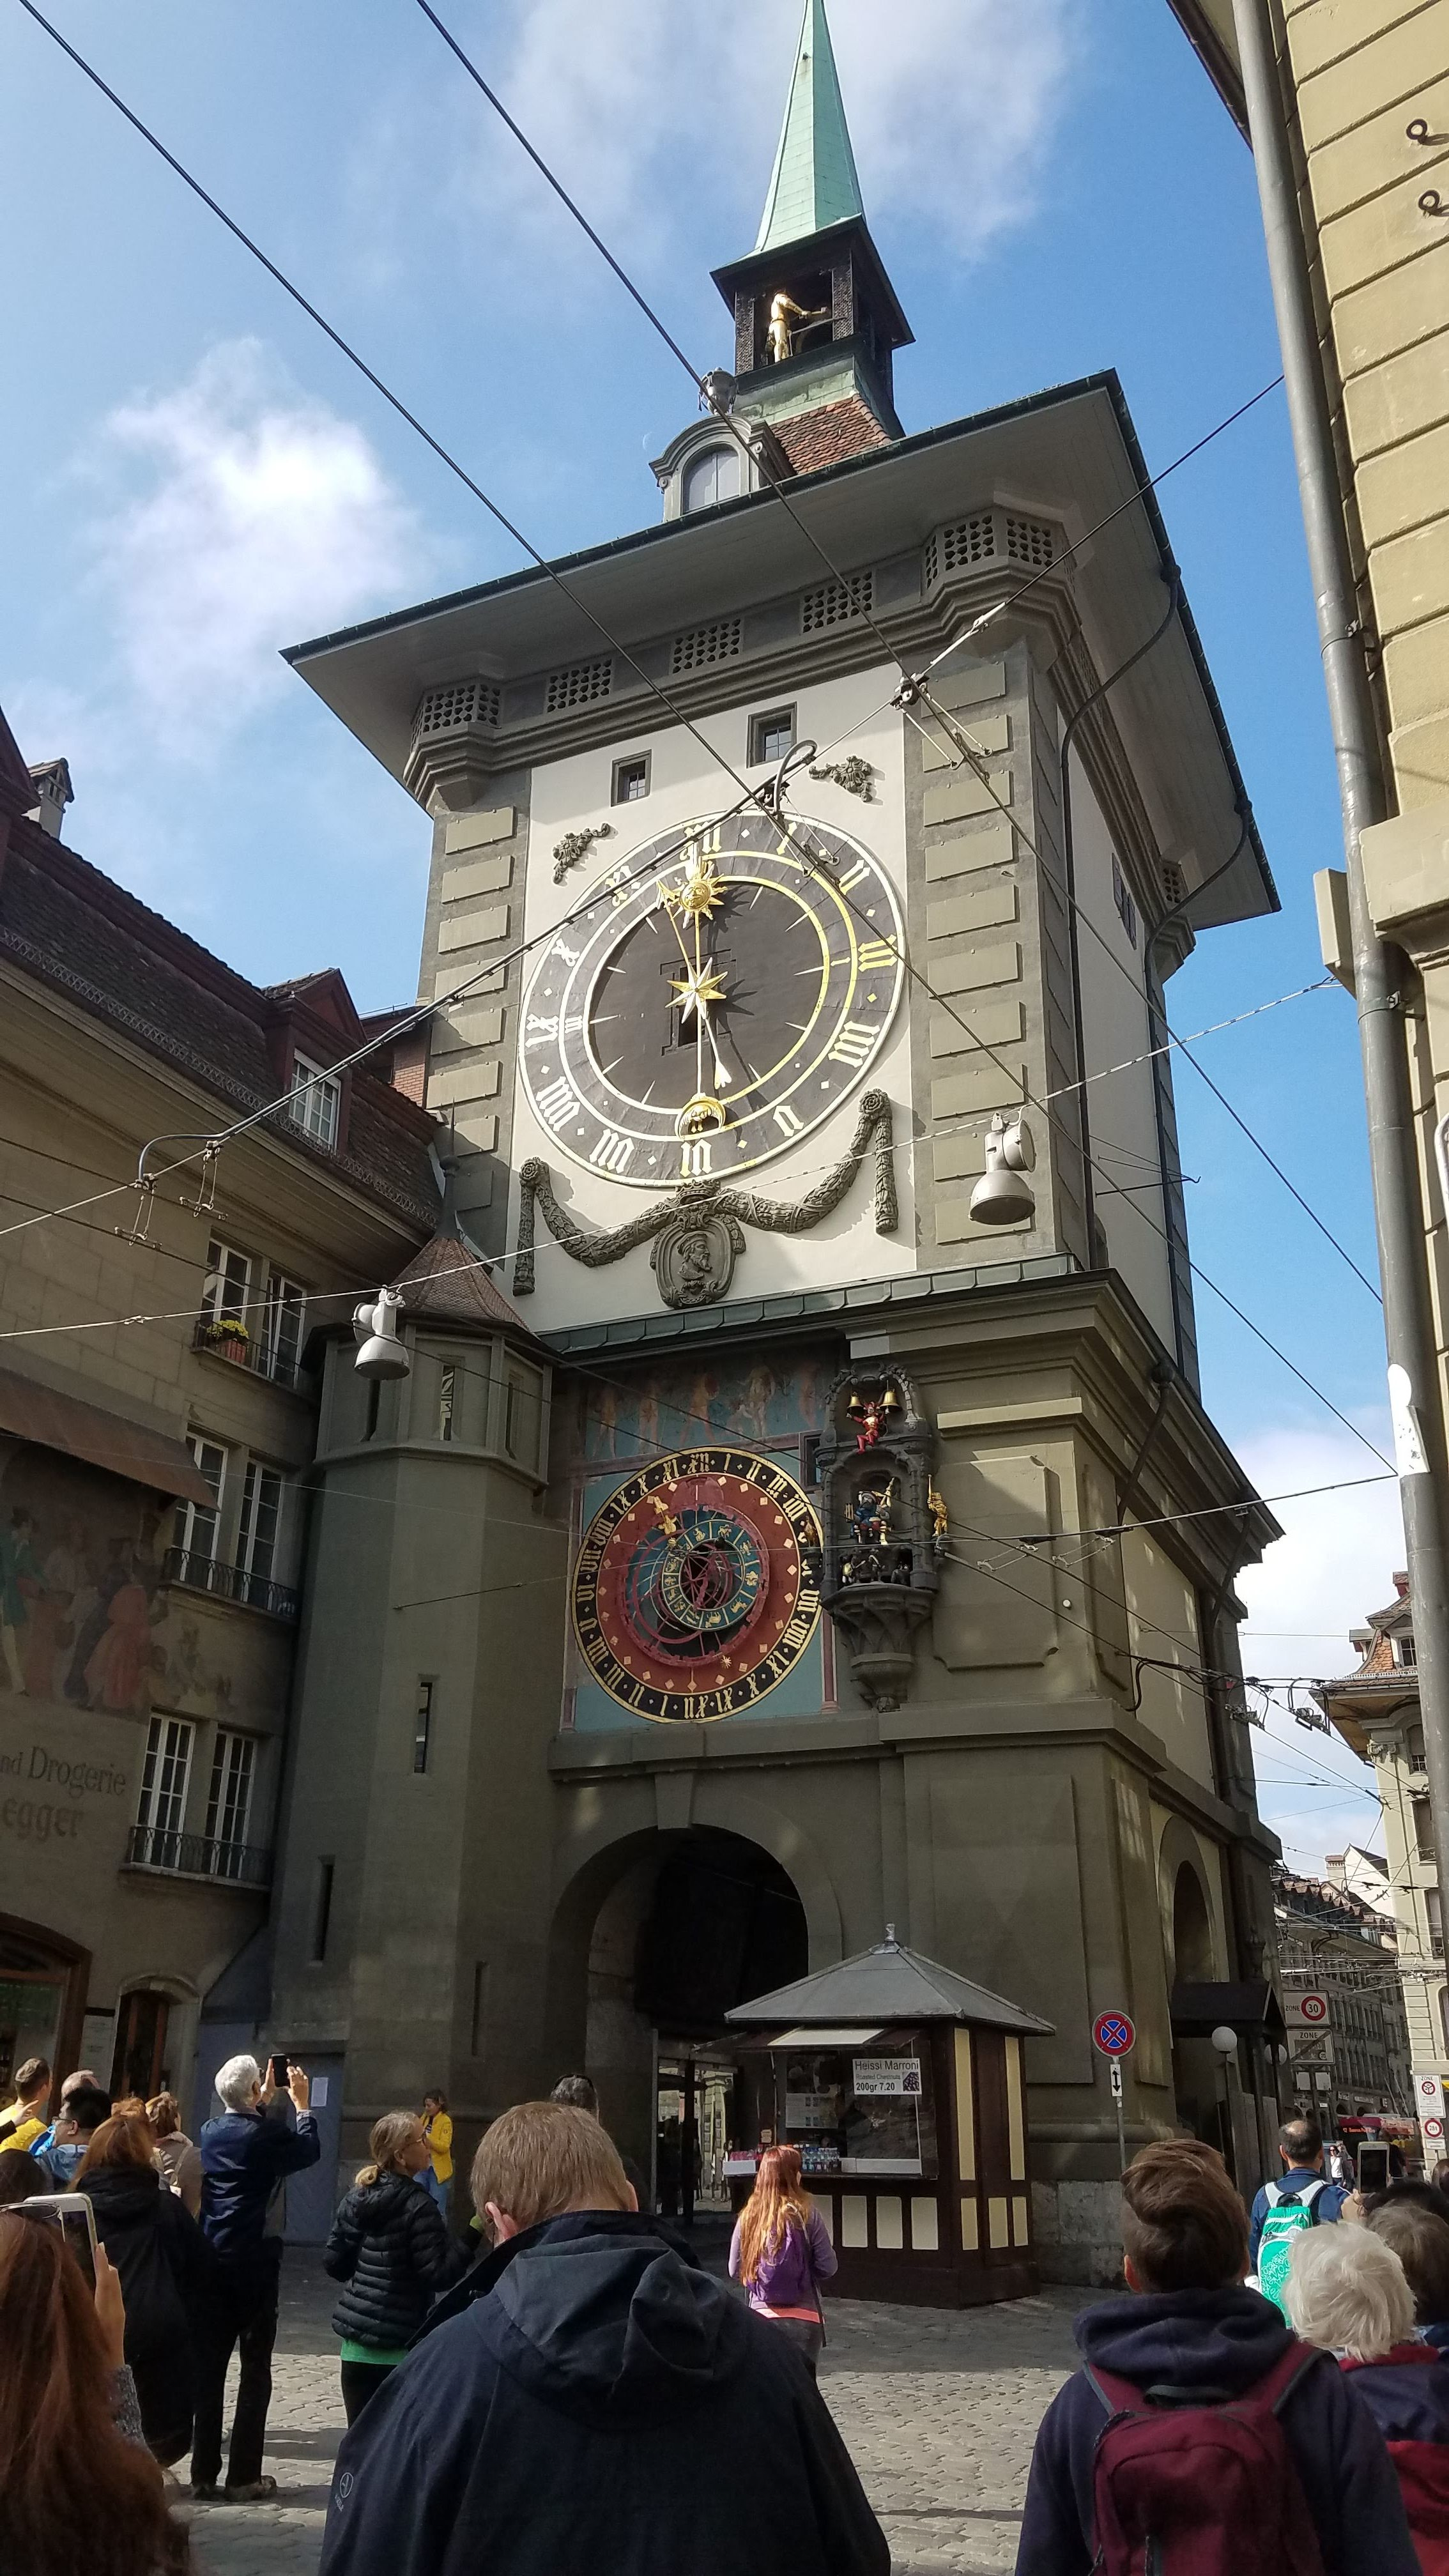 The Zytglogge clock tower in Bern is a major tourist attraction and a UNESCO World Heritage Site.